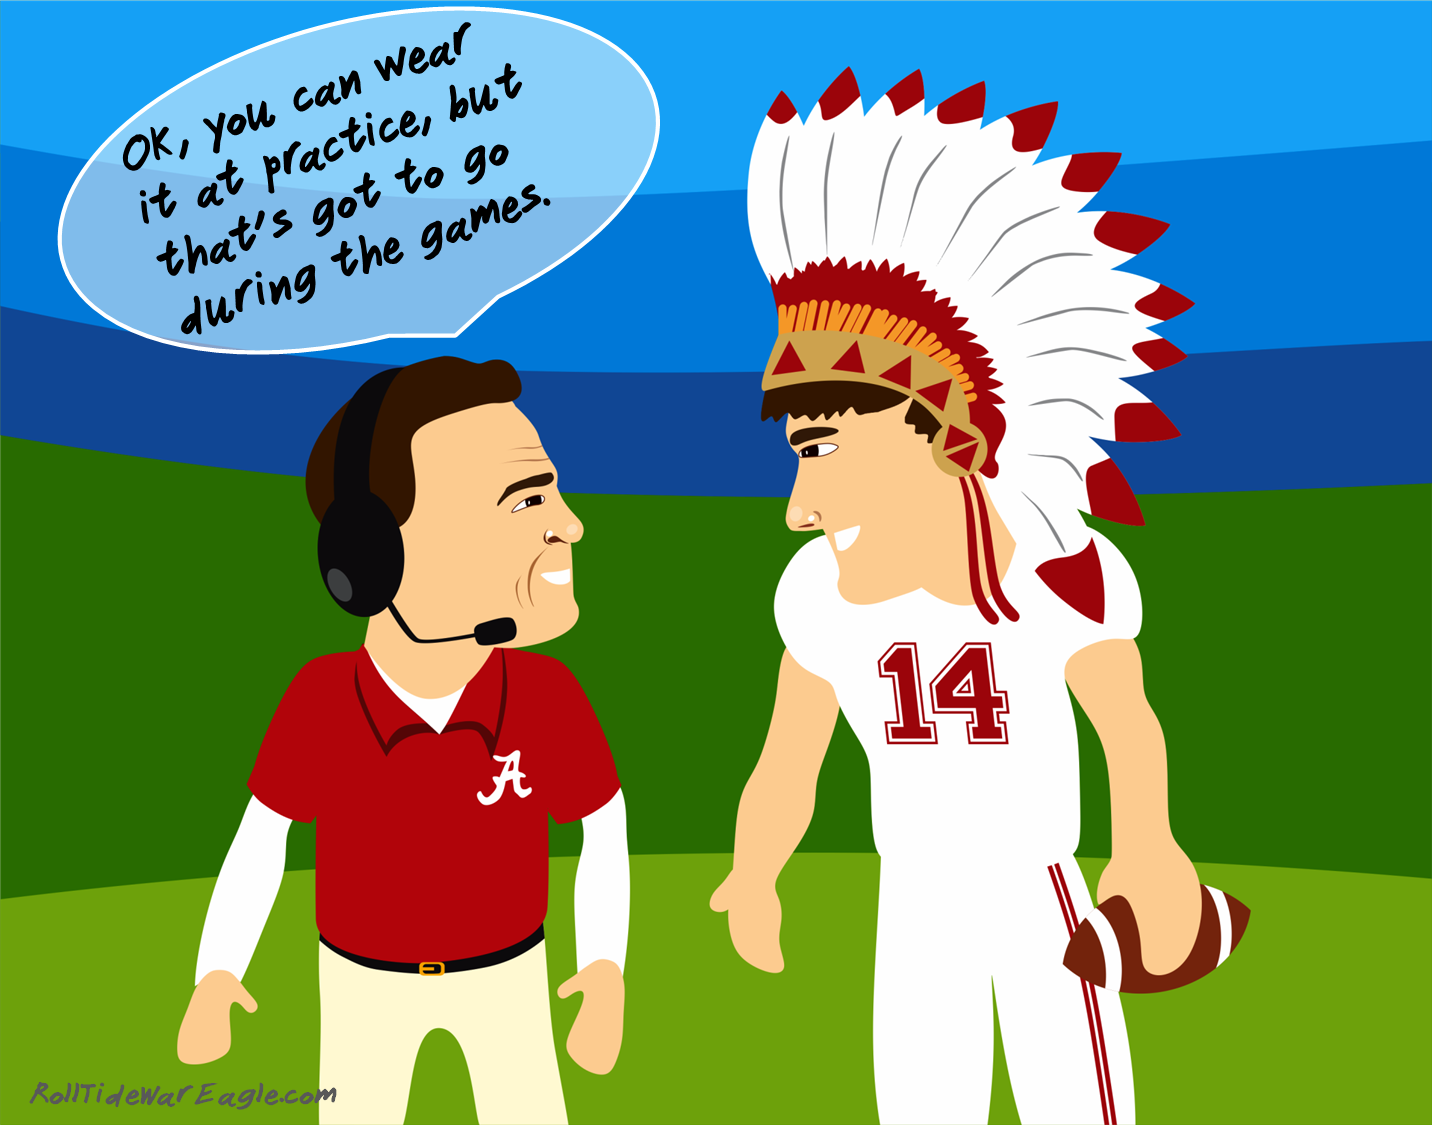 Jake Coker New To The Tide Sports Stories That Inform And Entertain From Rolltidewareagle Com Sports Story Roll Tide Sec Football